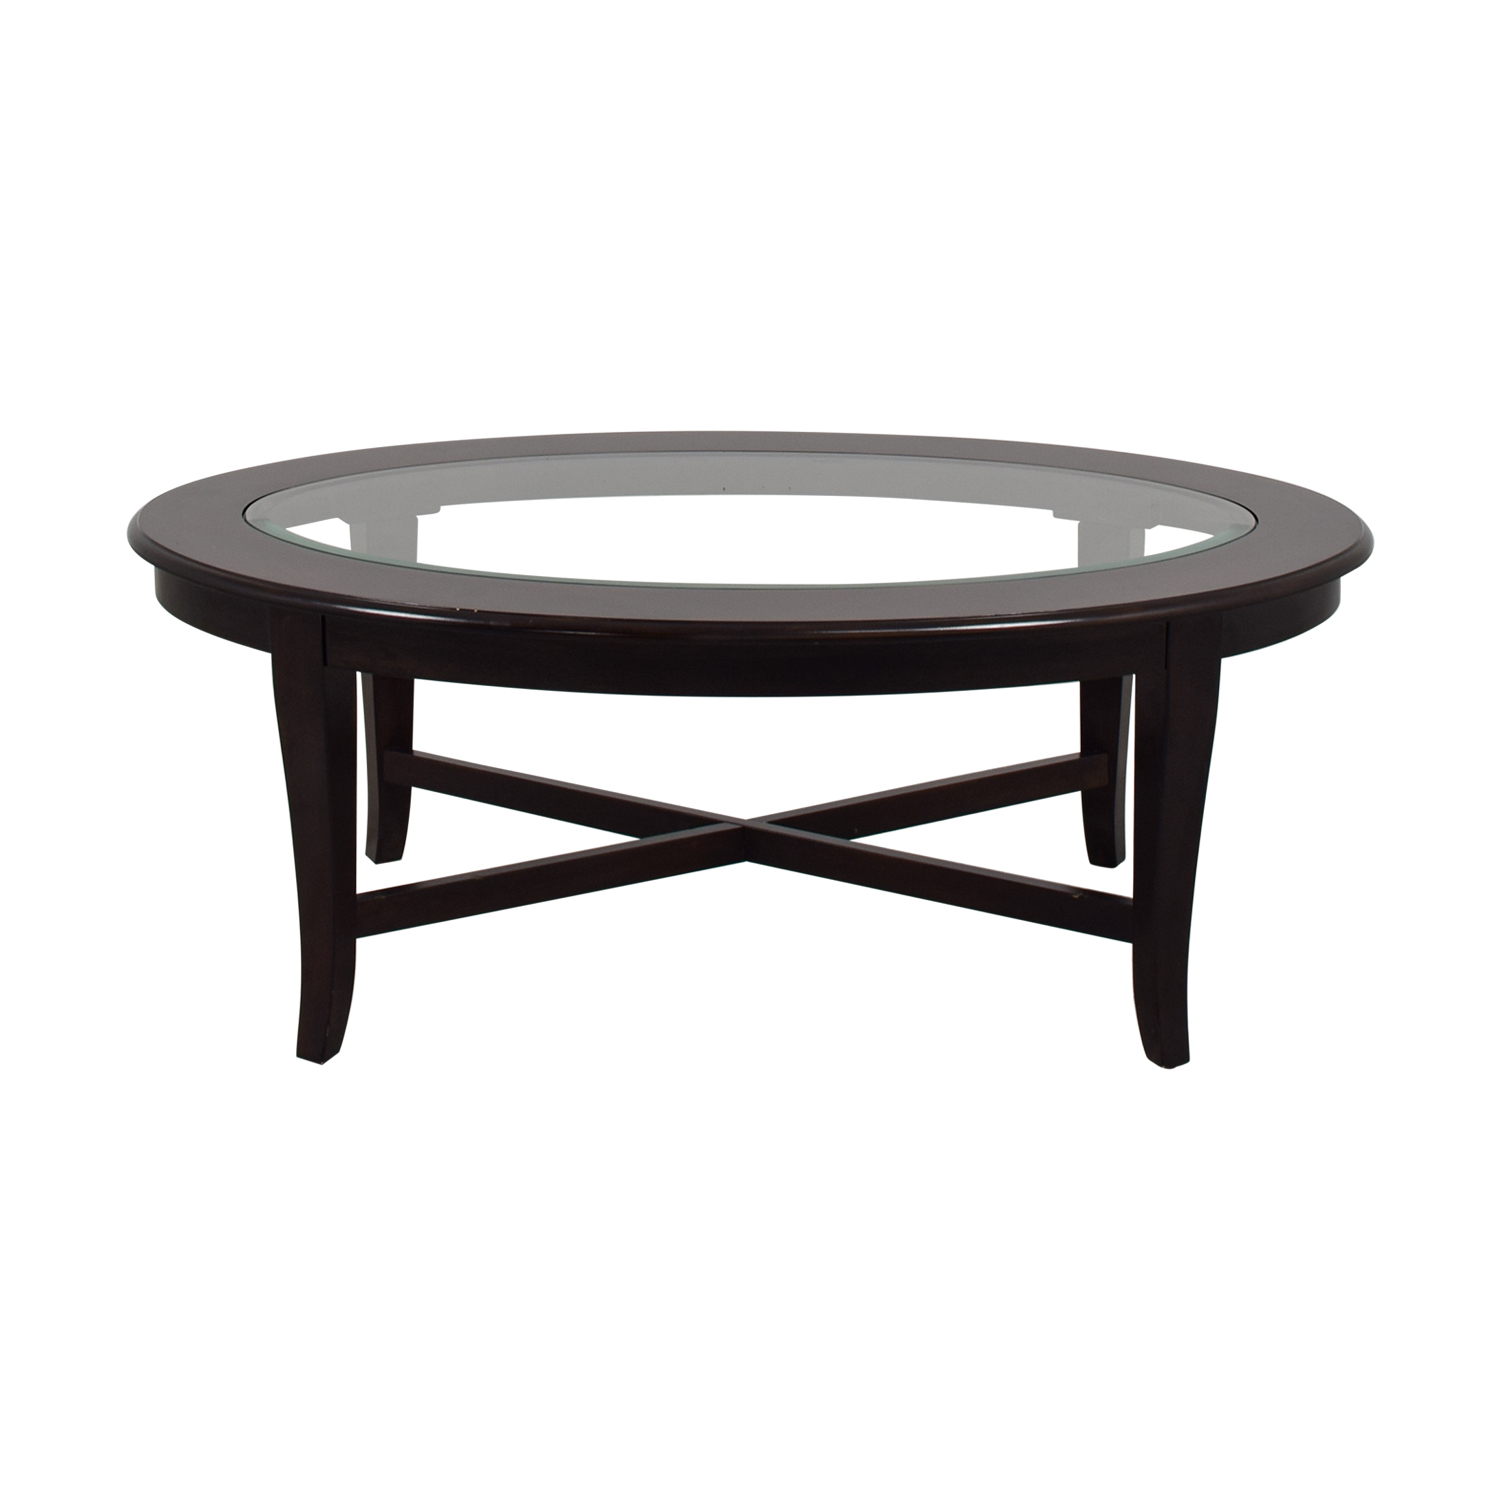 Bob's Furniture Bob's Furniture Oval Glass Coffee Table for sale